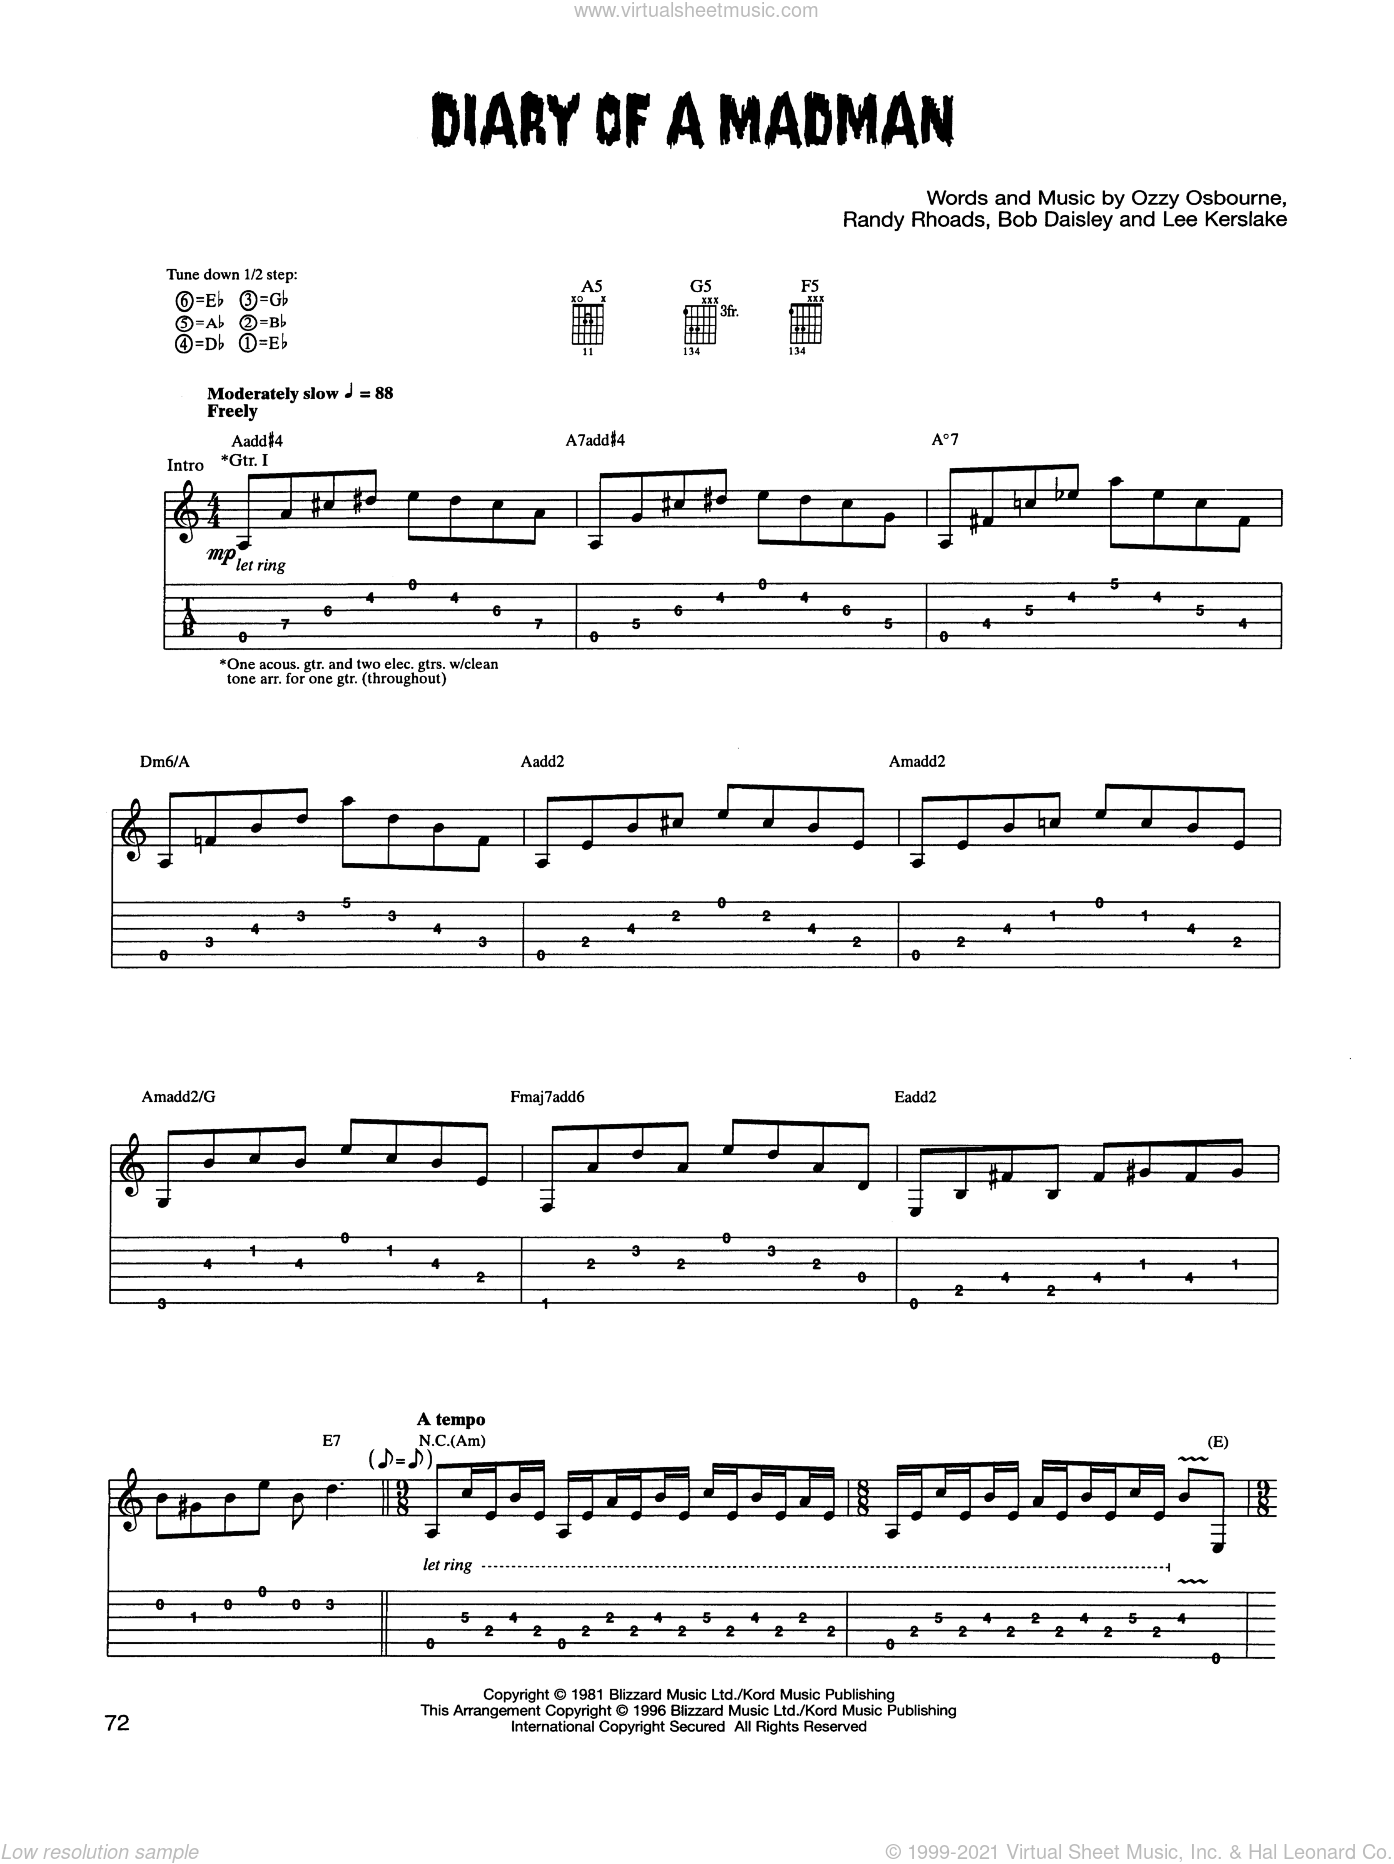 Diary Of A Madman sheet music for guitar (tablature) by Randy Rhoads